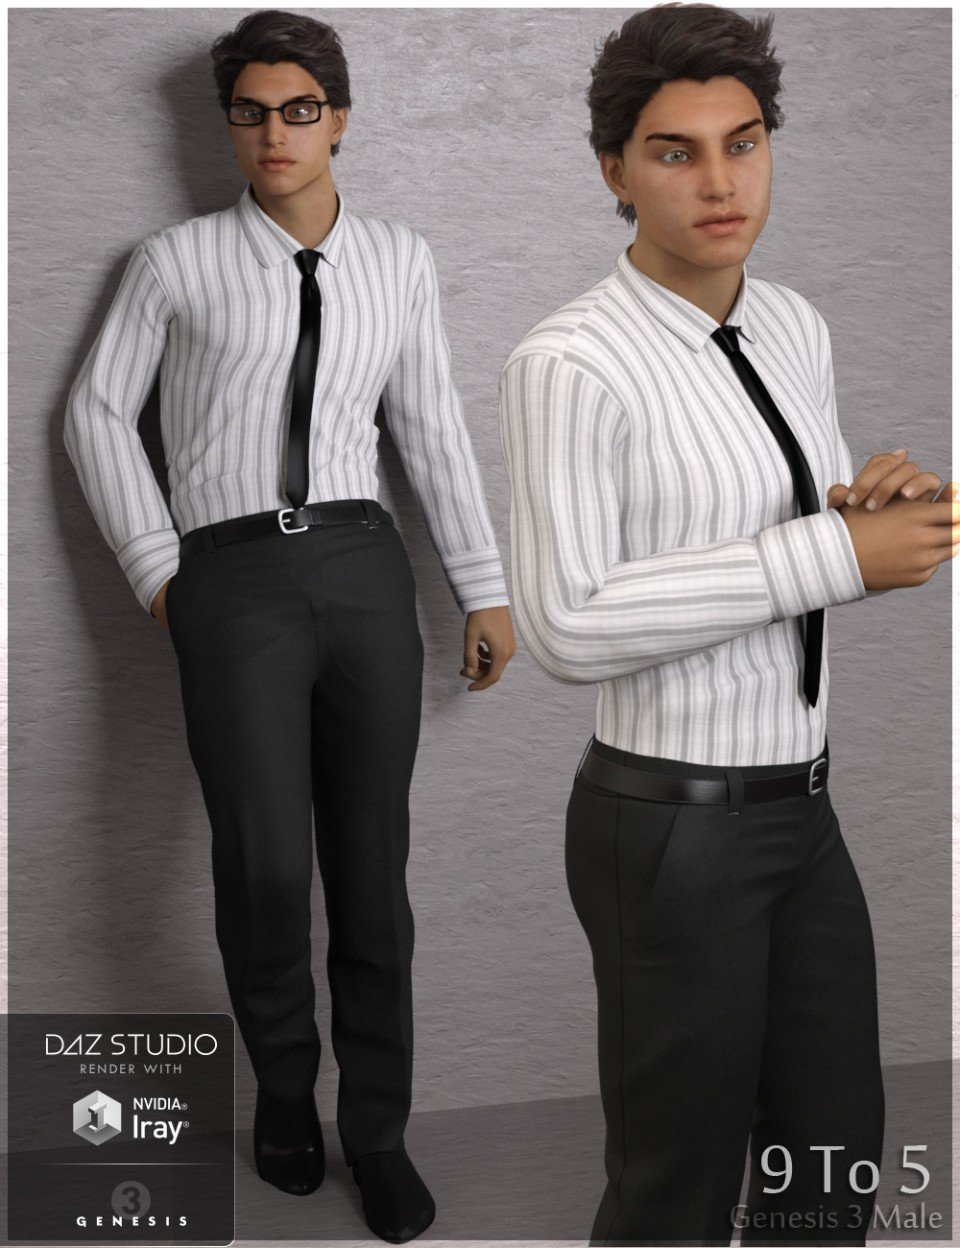 9 To 5 Outfit for Genesis 3 Male(s)_DAZ3D下载站